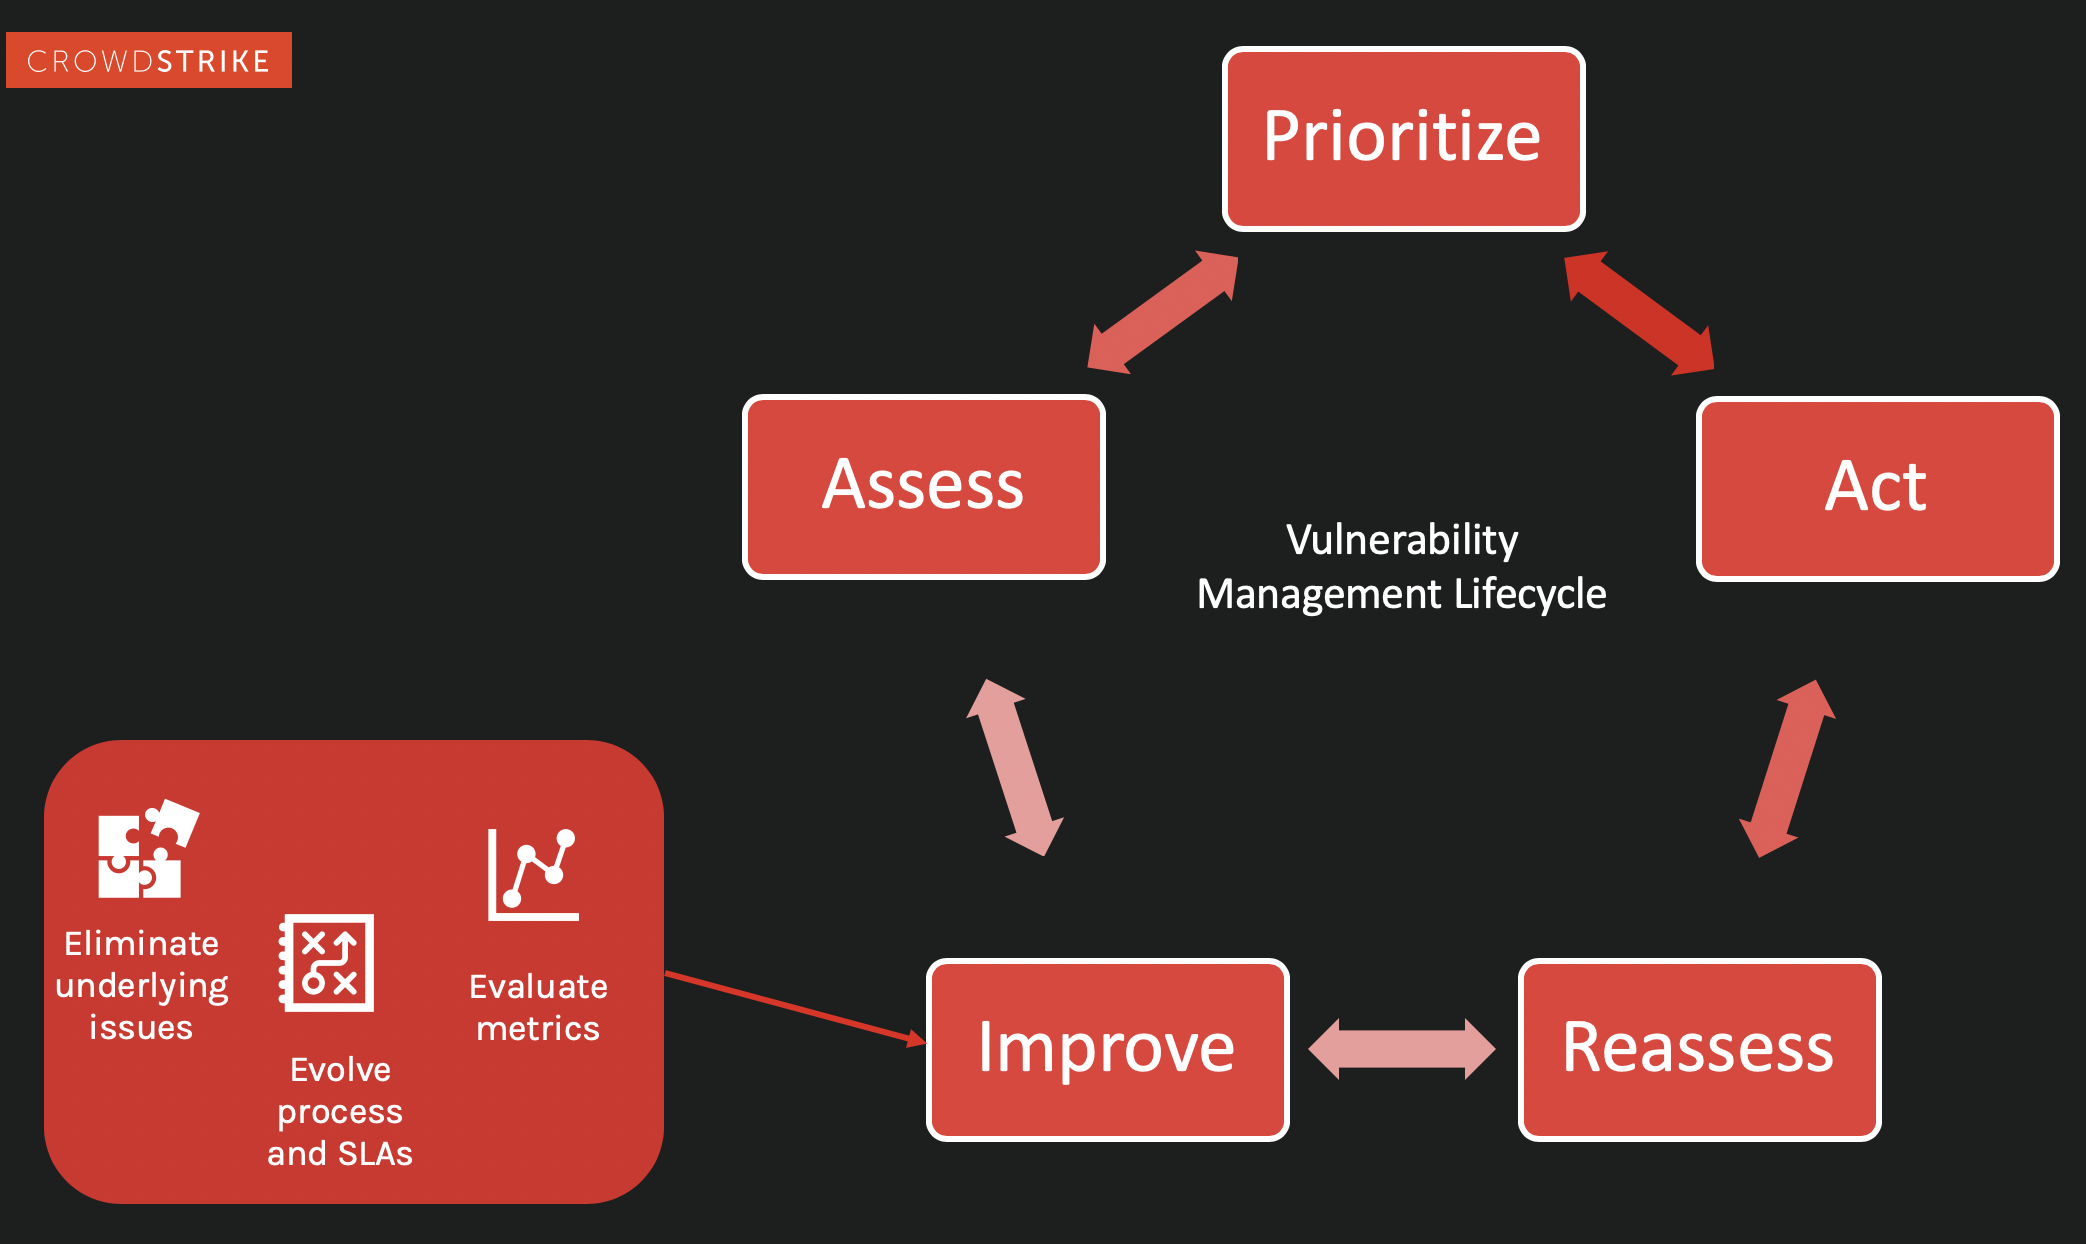 Improve aspect of the vulnerability management cycle